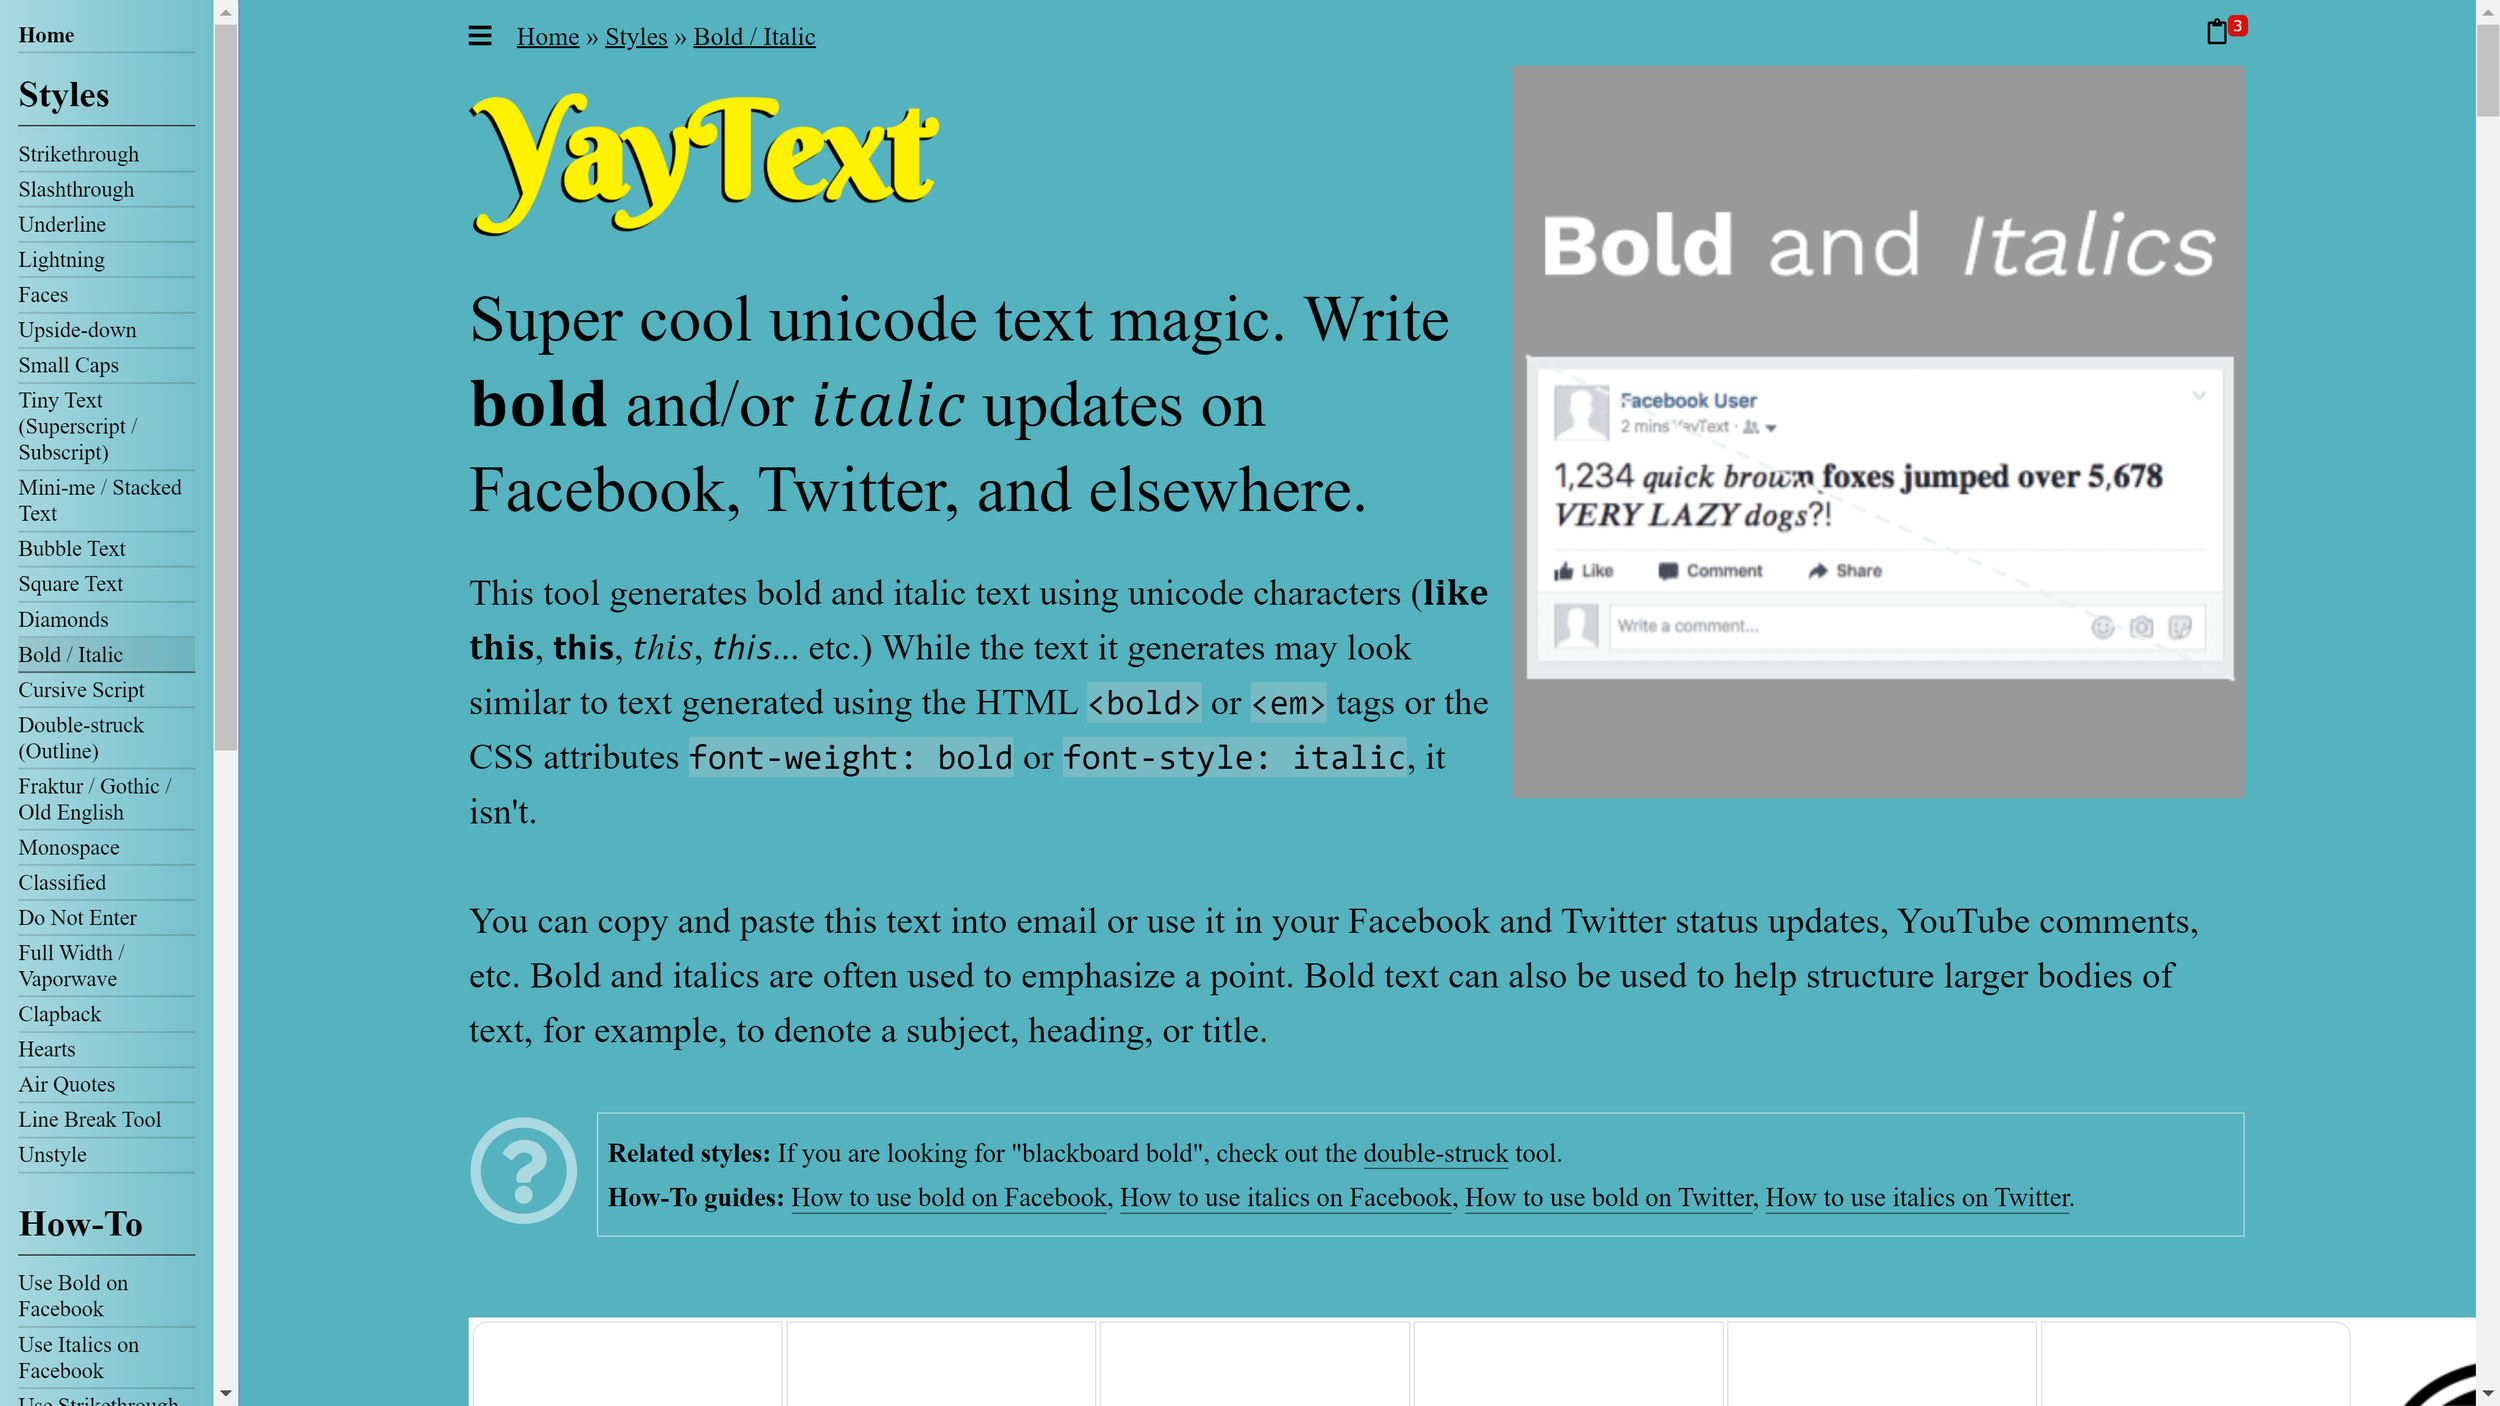 How To Bold Text In Facebook Post Max Dalton Tutorials Old english poetry included long epic heroic poems, which drew on the bible as well as on pagan sources for their content. how to bold text in facebook post